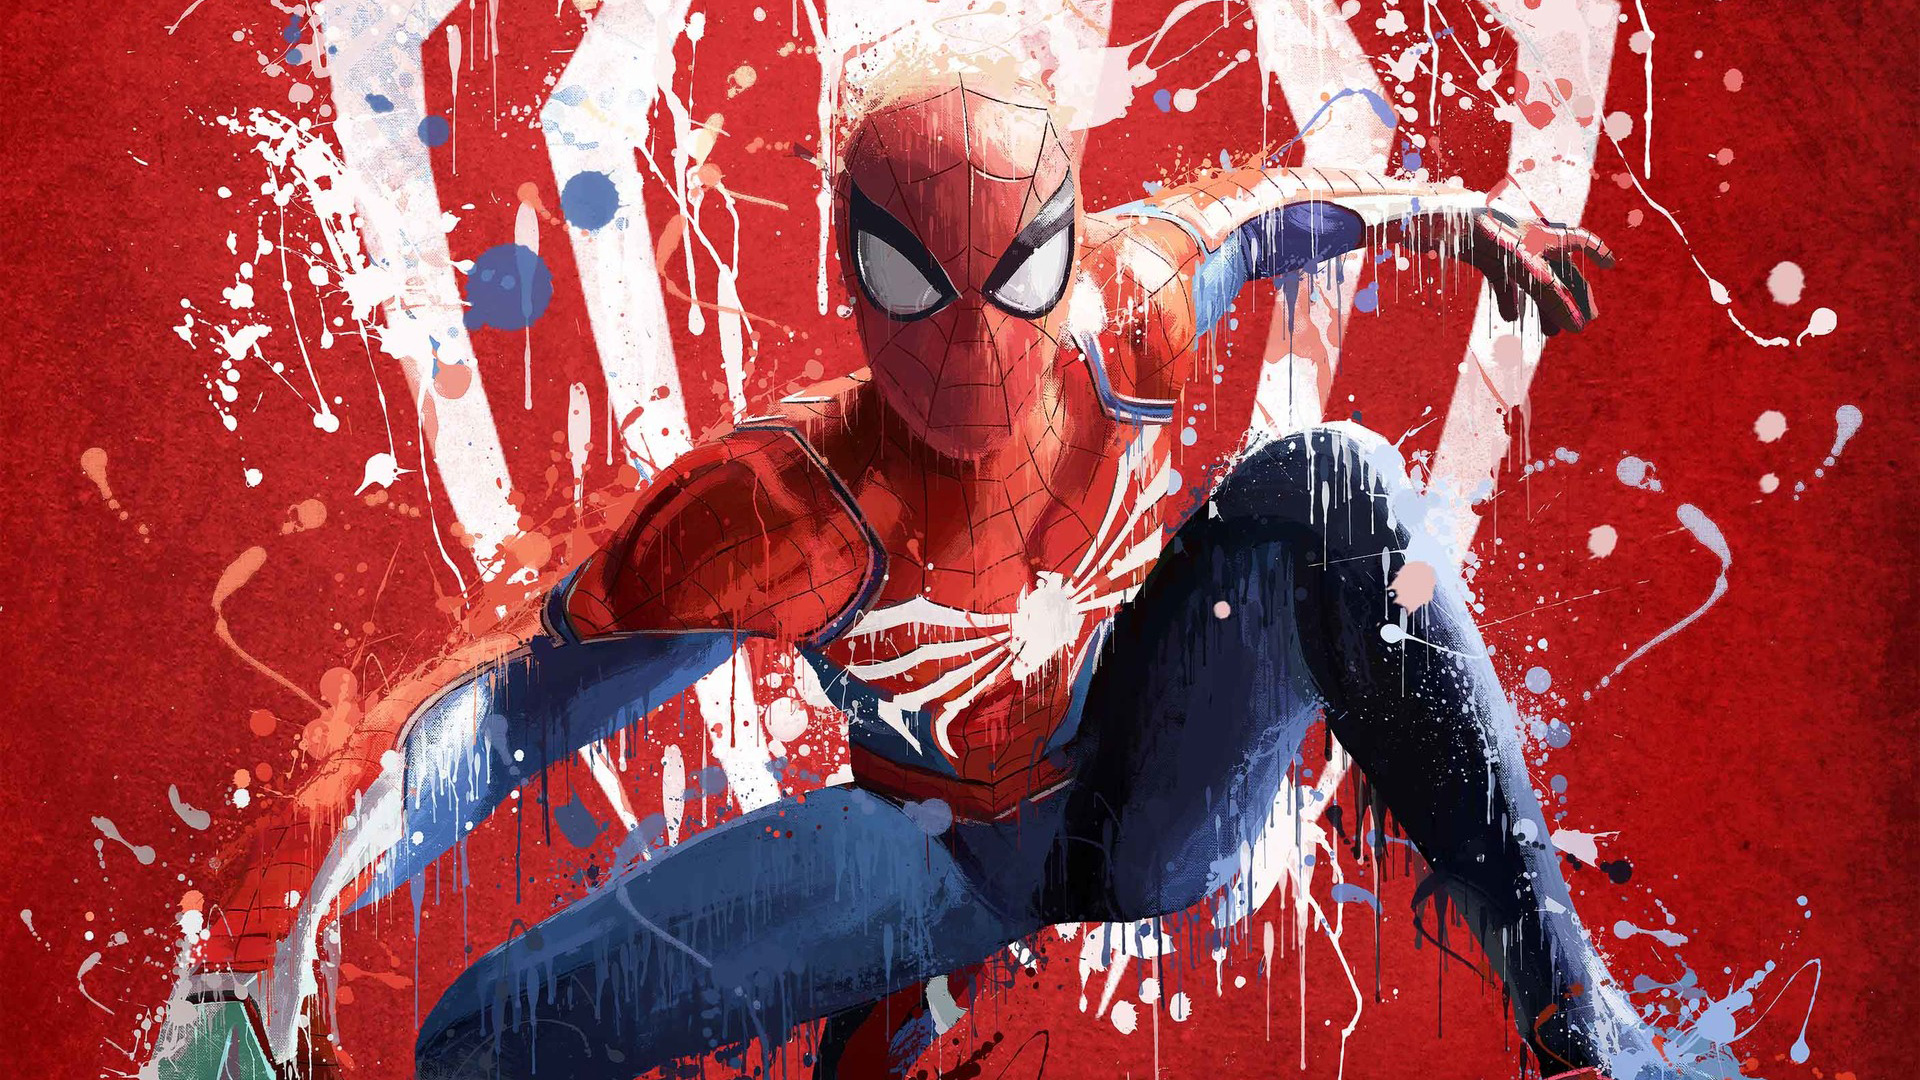 Spiderman Ps4 Art 2018 Hd Games 4k Wallpapers Images Backgrounds